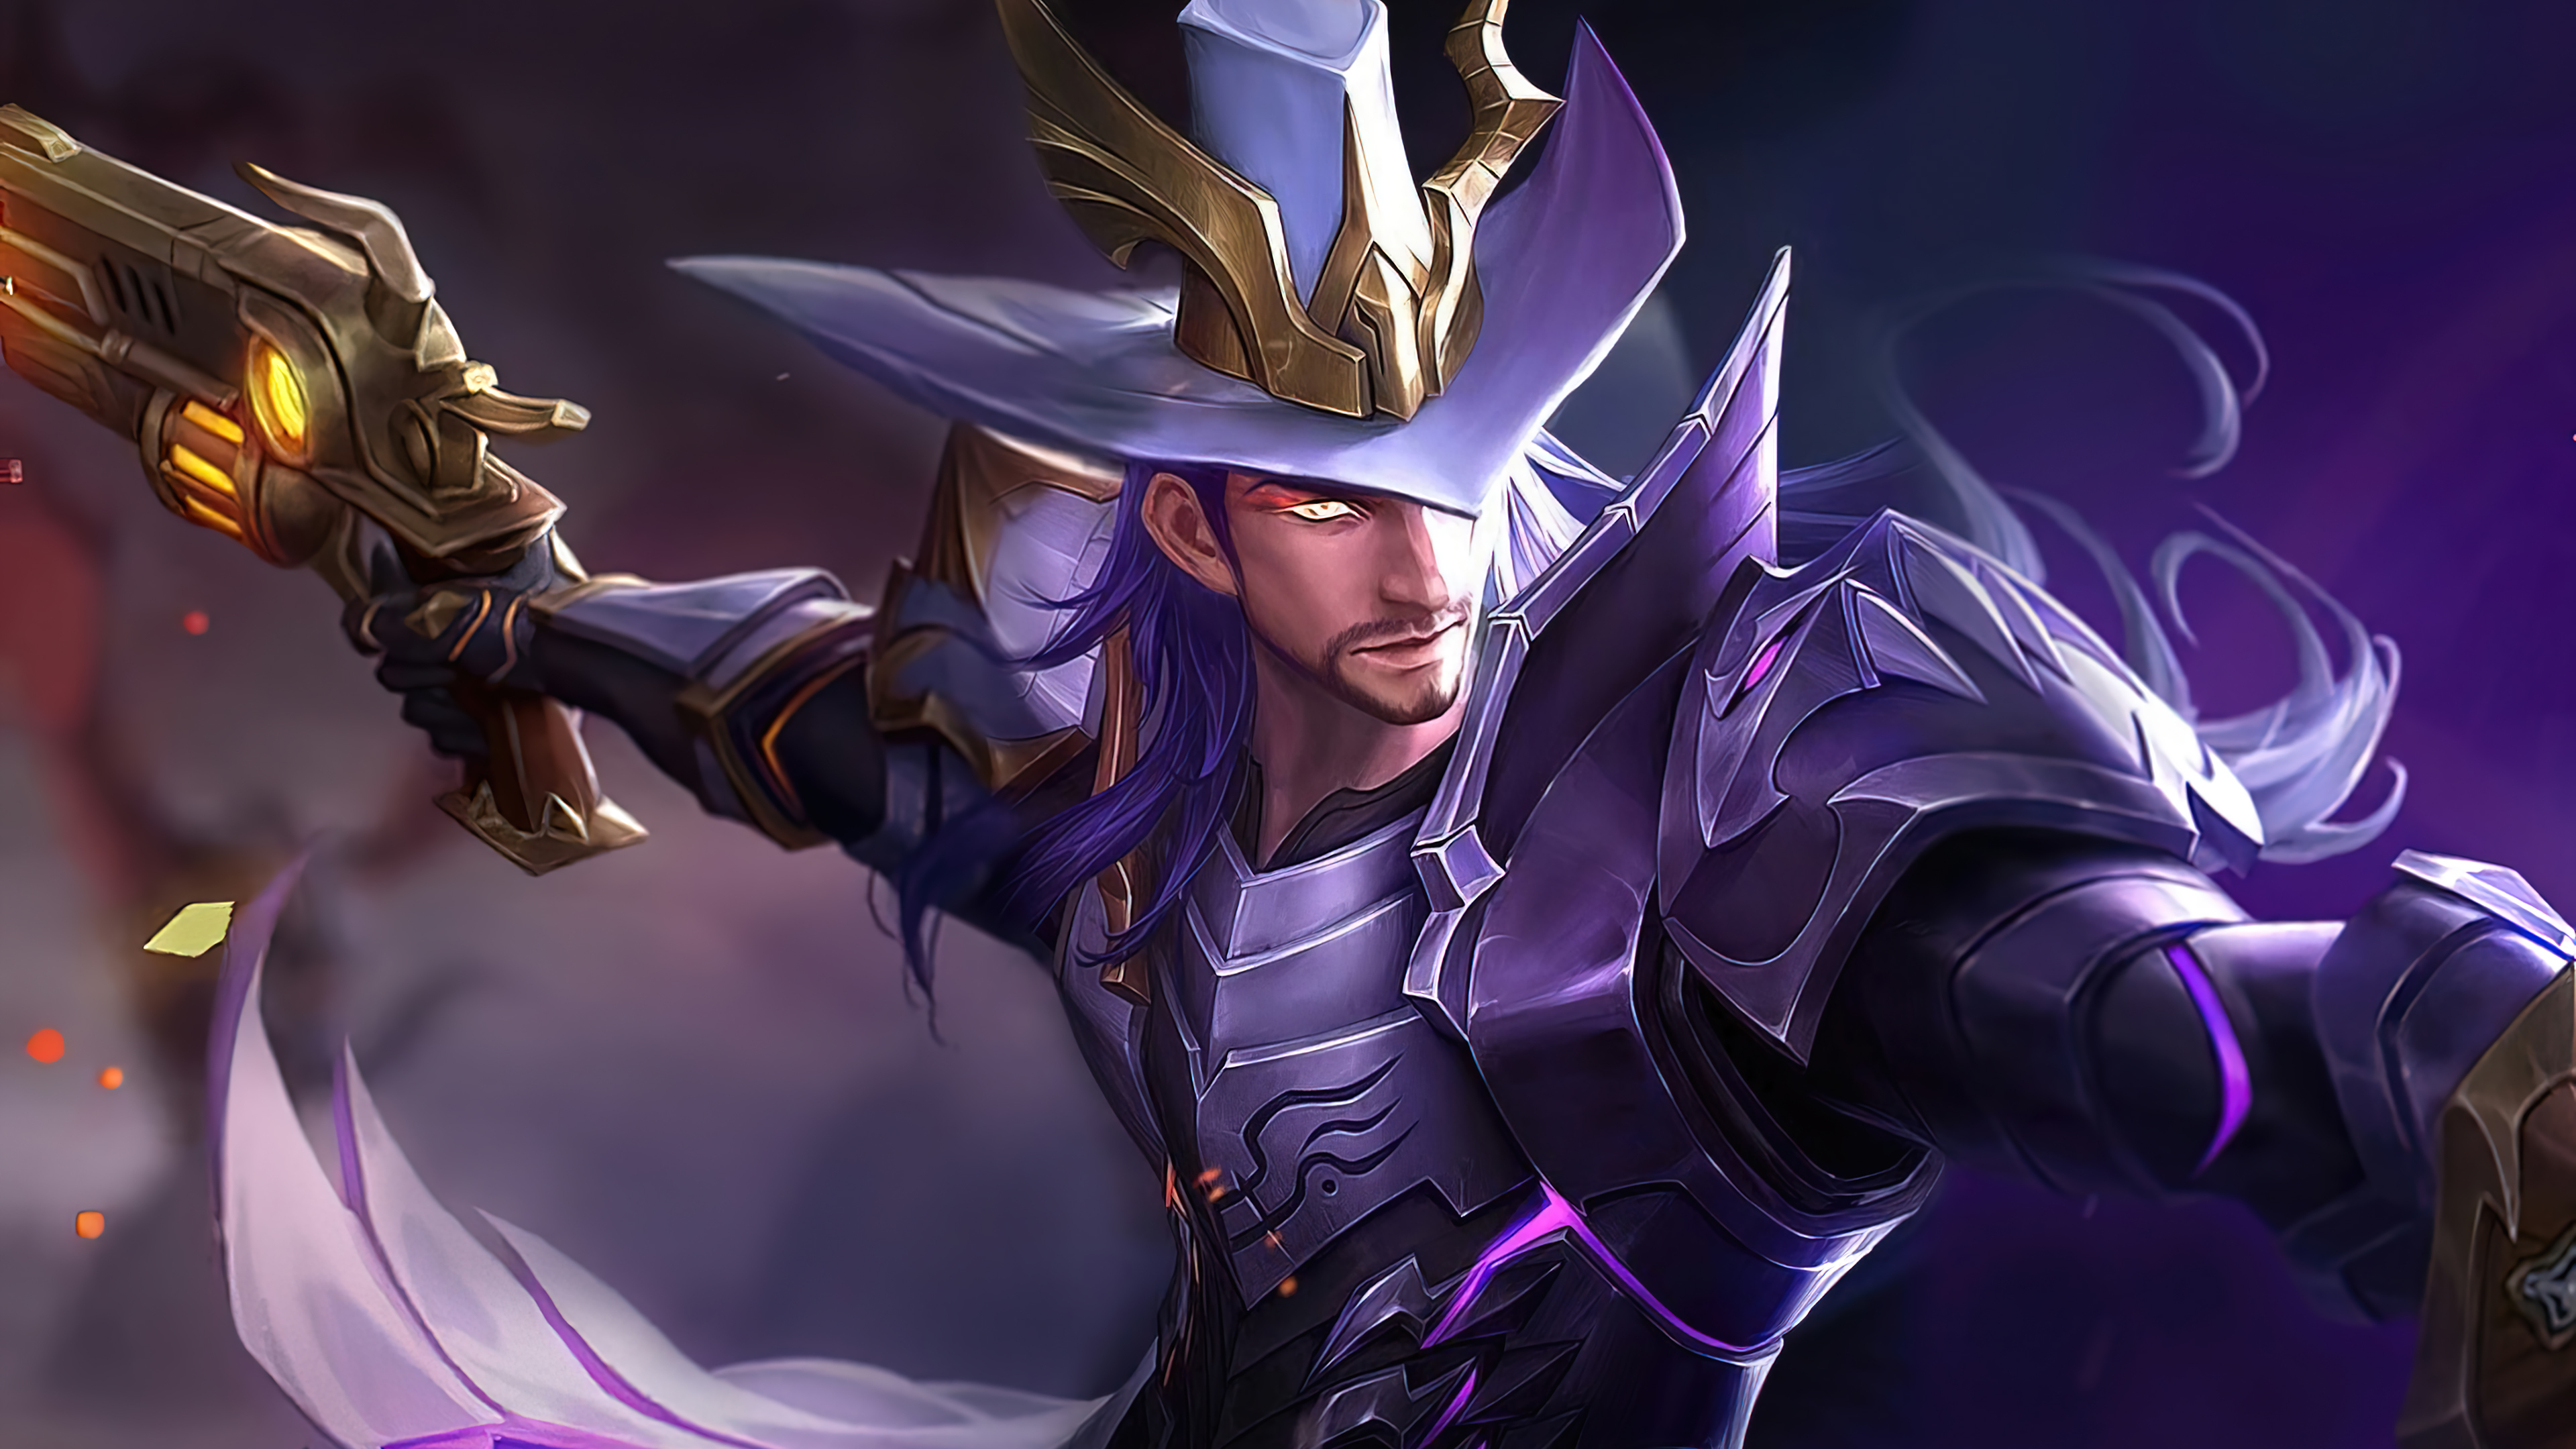 Fondos de pantalla Clint Shadow Omen League of Legends